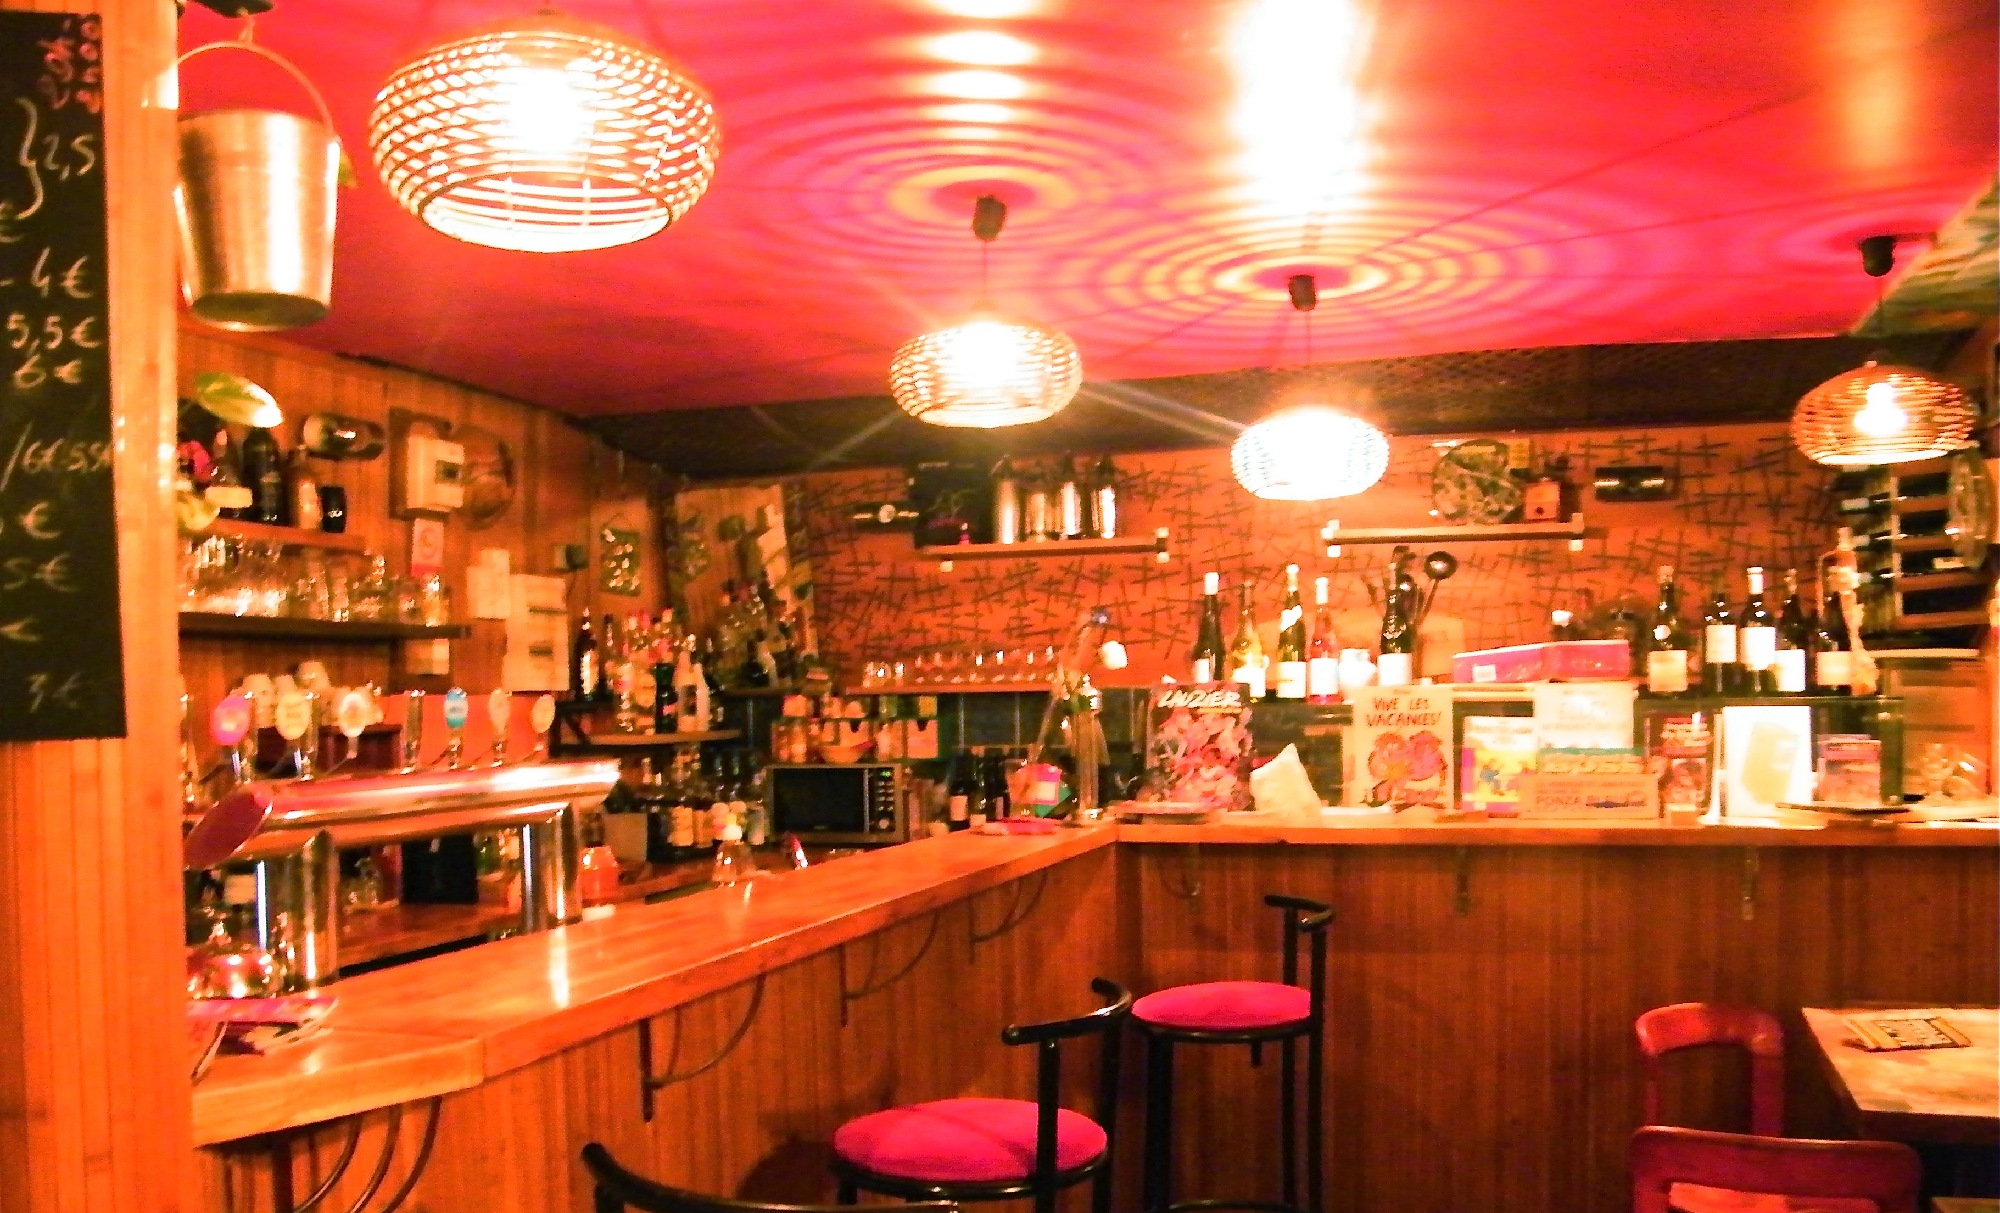 Jazz clubs and bars time out paris for Bar interieur maison